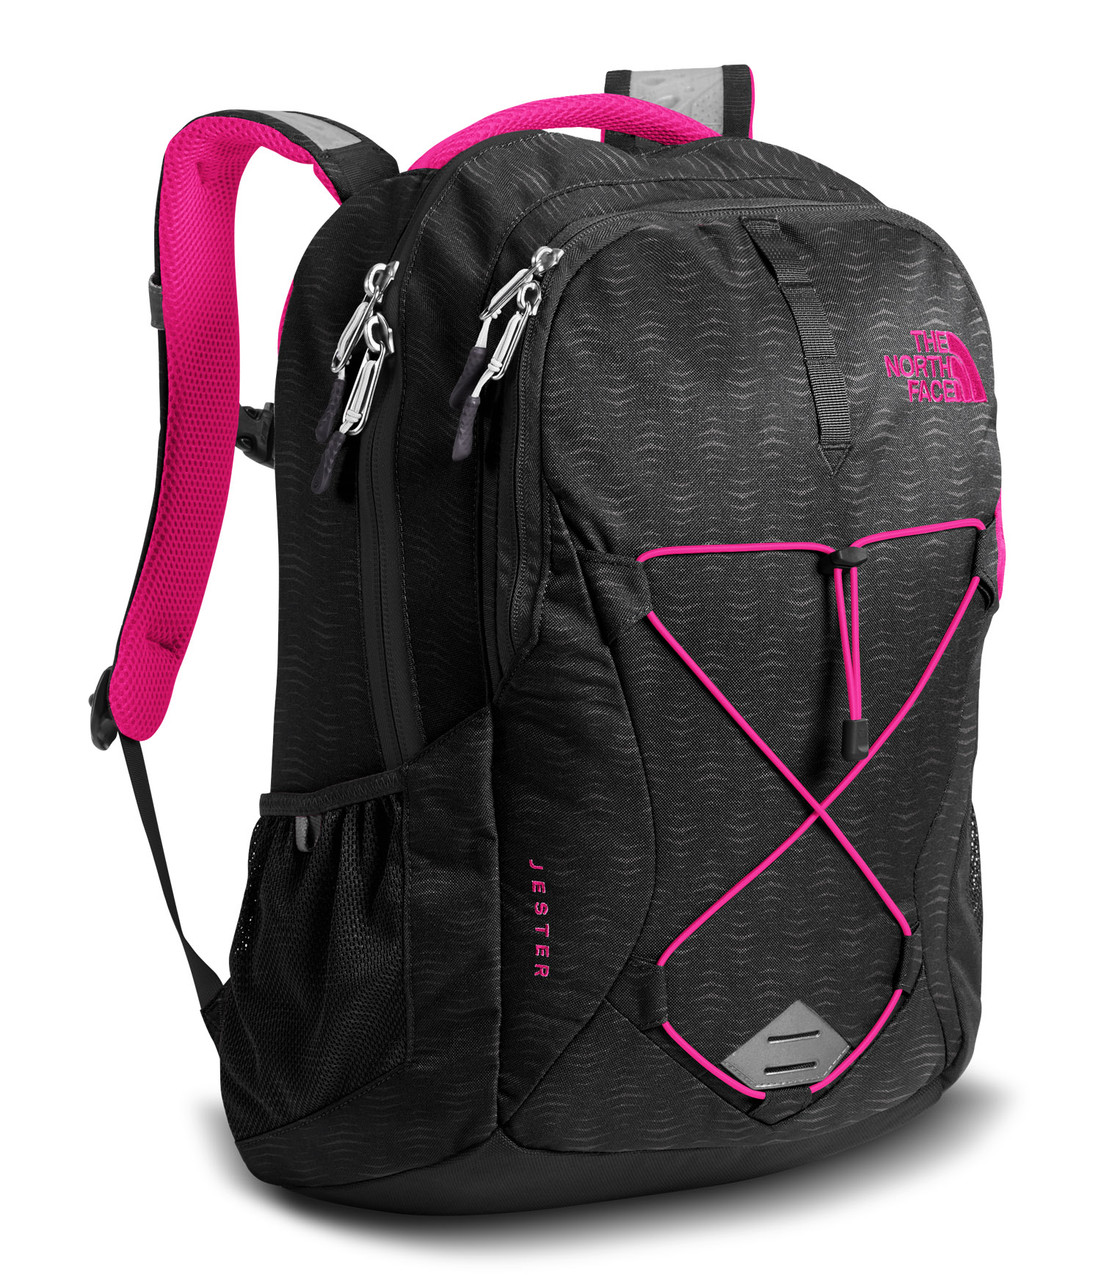 ff938d968 Women's The North Face Jester Backpack - Sieverts Sporting Goods